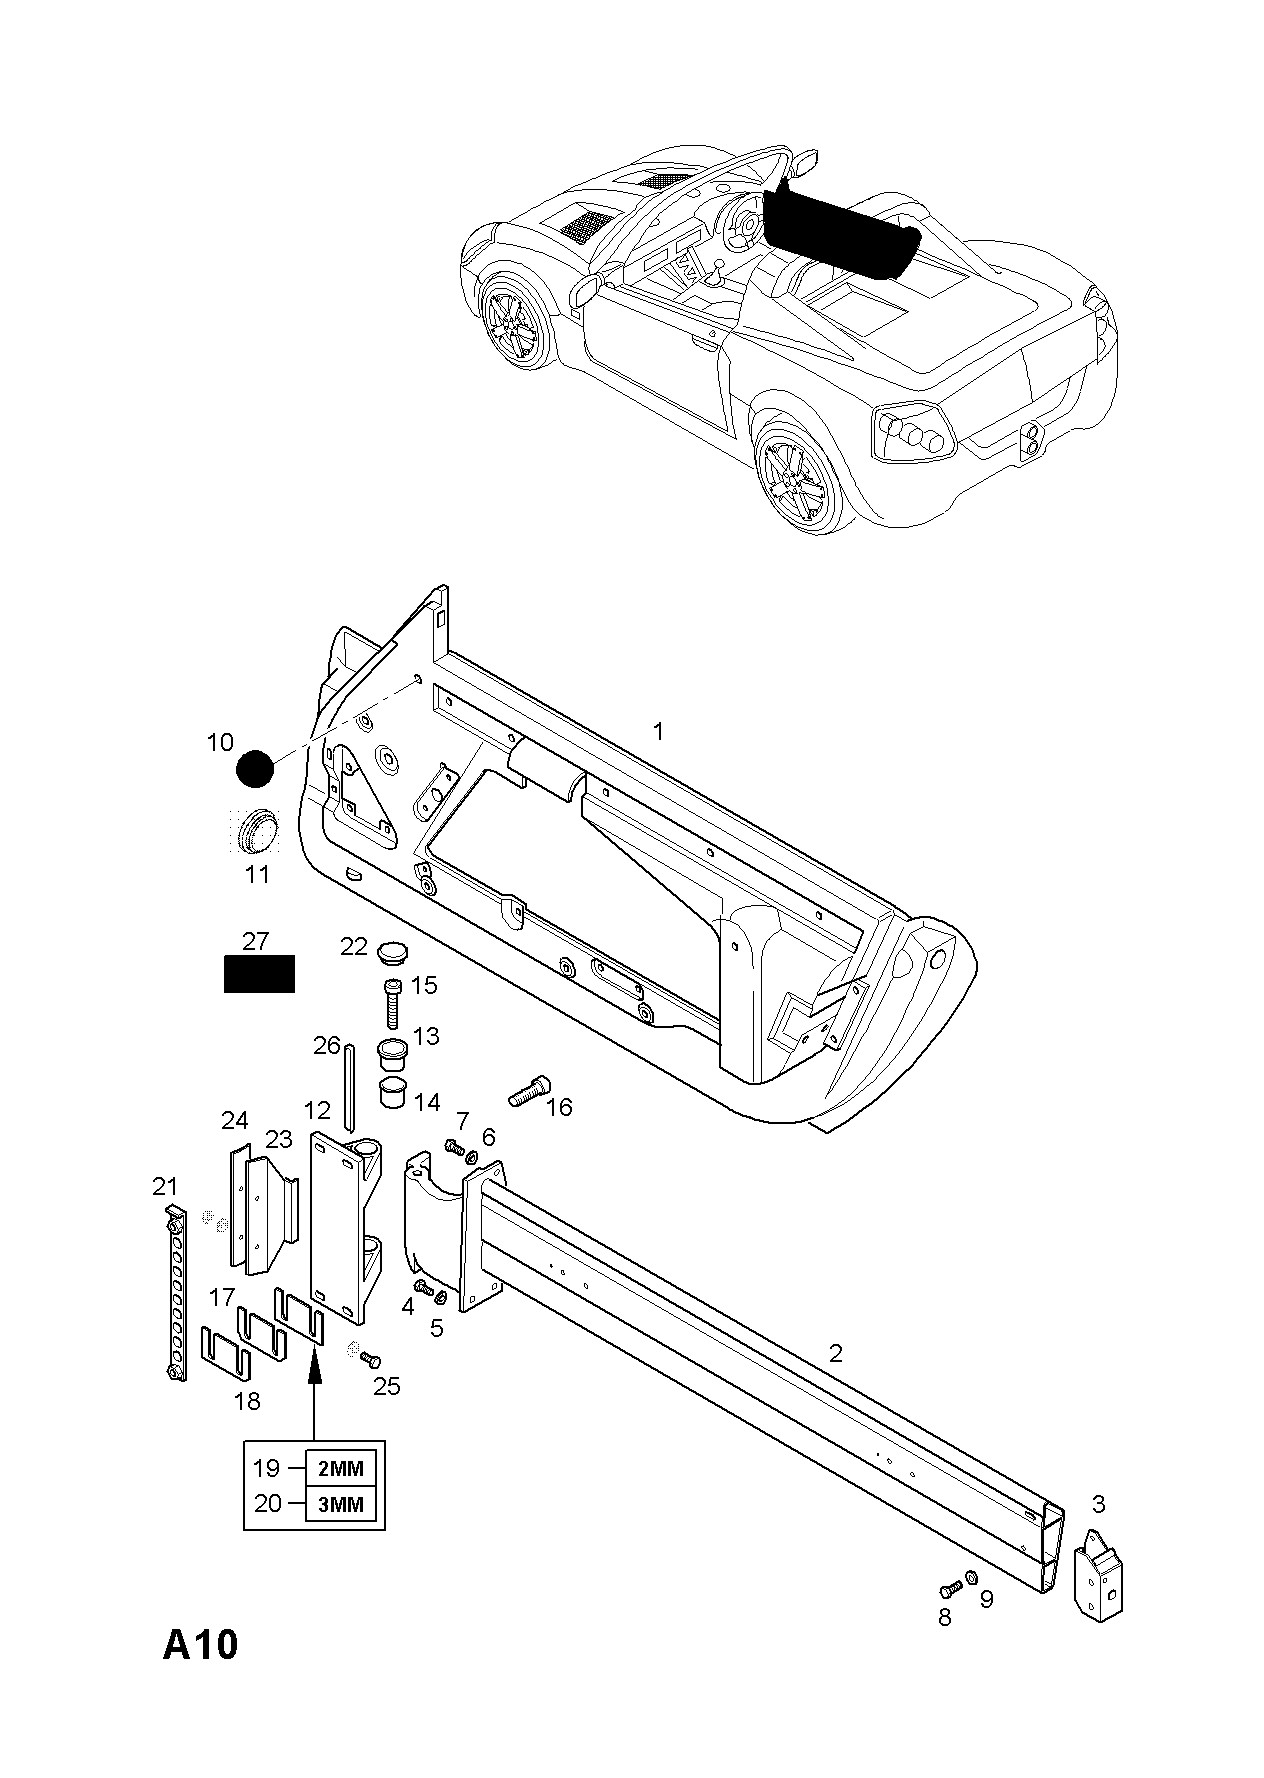 Parts Of A Car Body Diagram Opel Speedster 2001 2004 A Body Shell and Panels 5 Of Parts Of A Car Body Diagram Pin On Auto